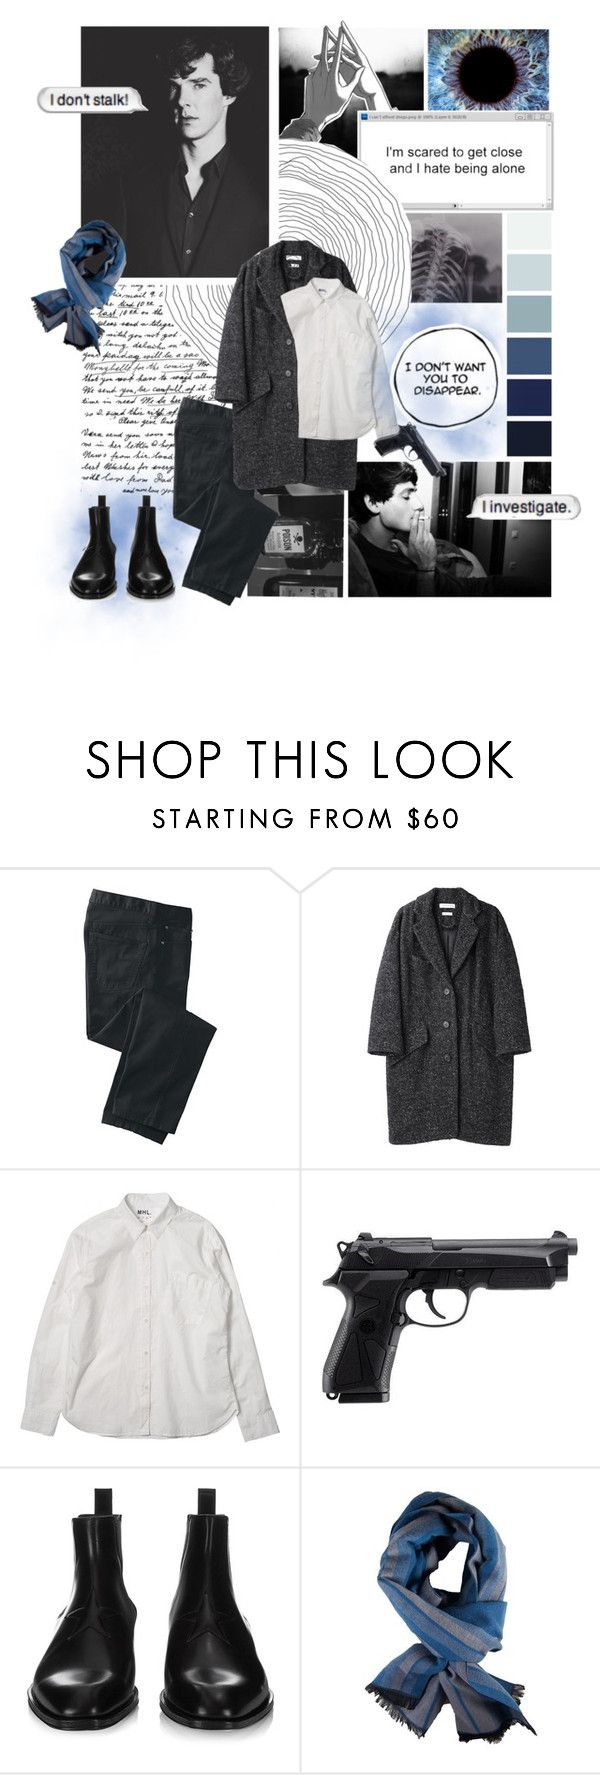 """""""I don't stalk! I investigate."""" by drinkdionysus ❤ liked on Polyvore featuring TravelSmith, INDIE HAIR, Étoile Isabel Marant, Beretta, Givenchy, DIBI, men's fashion and menswear"""